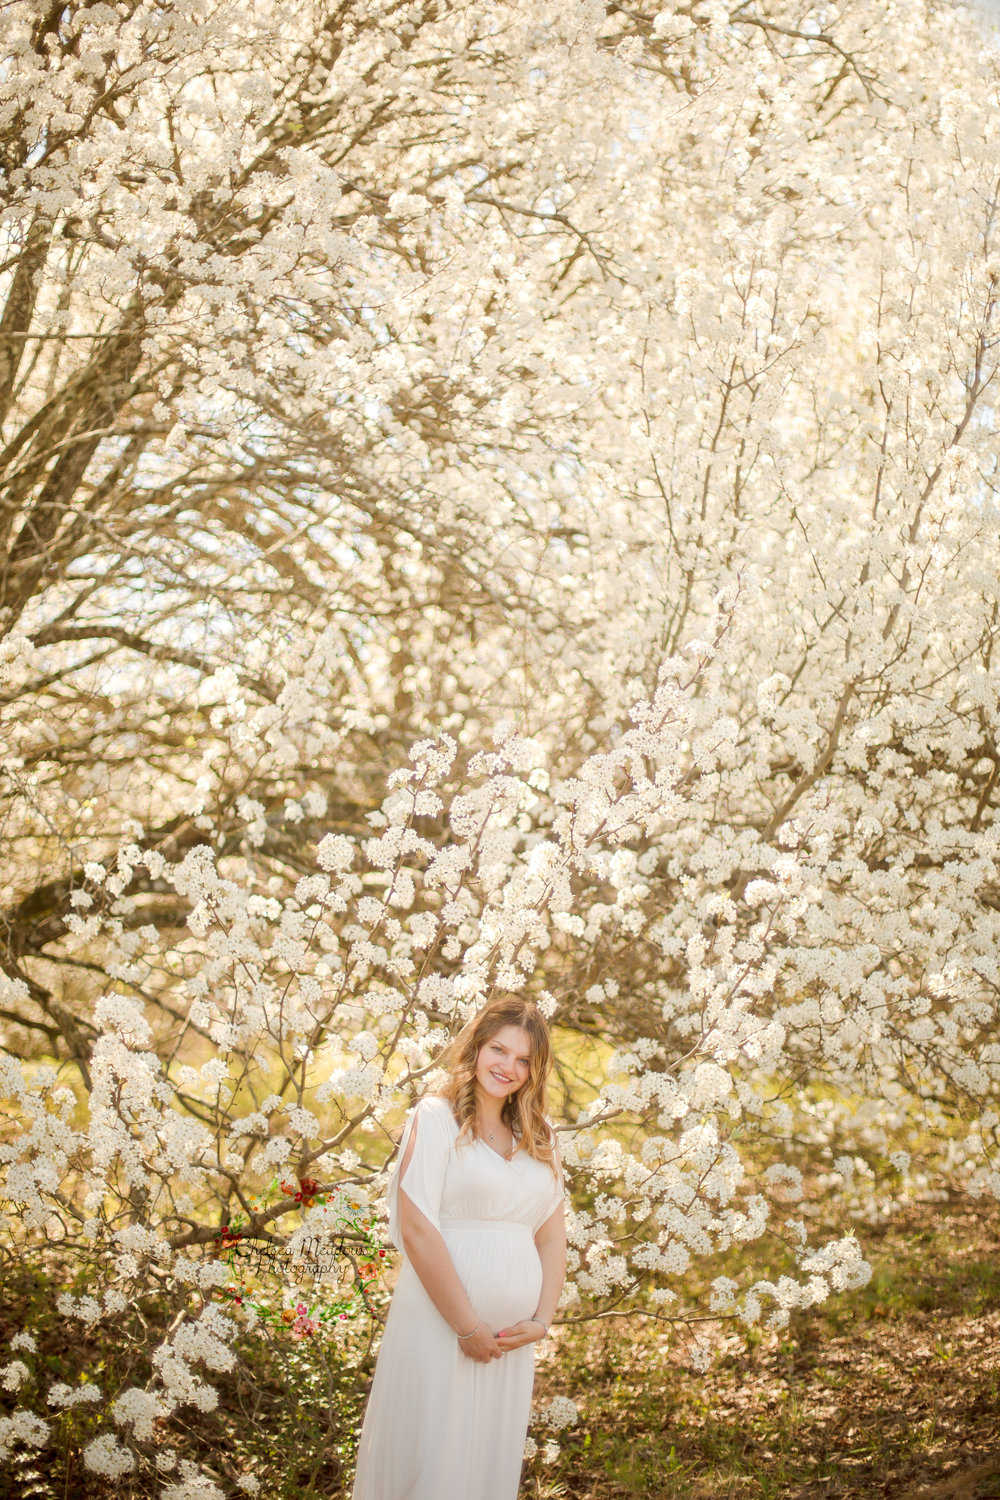 Nicole Spring Maternity Session - Nashville Maternity Photographer - Chelsea Meadows Photography (24)_edited-1.jpg